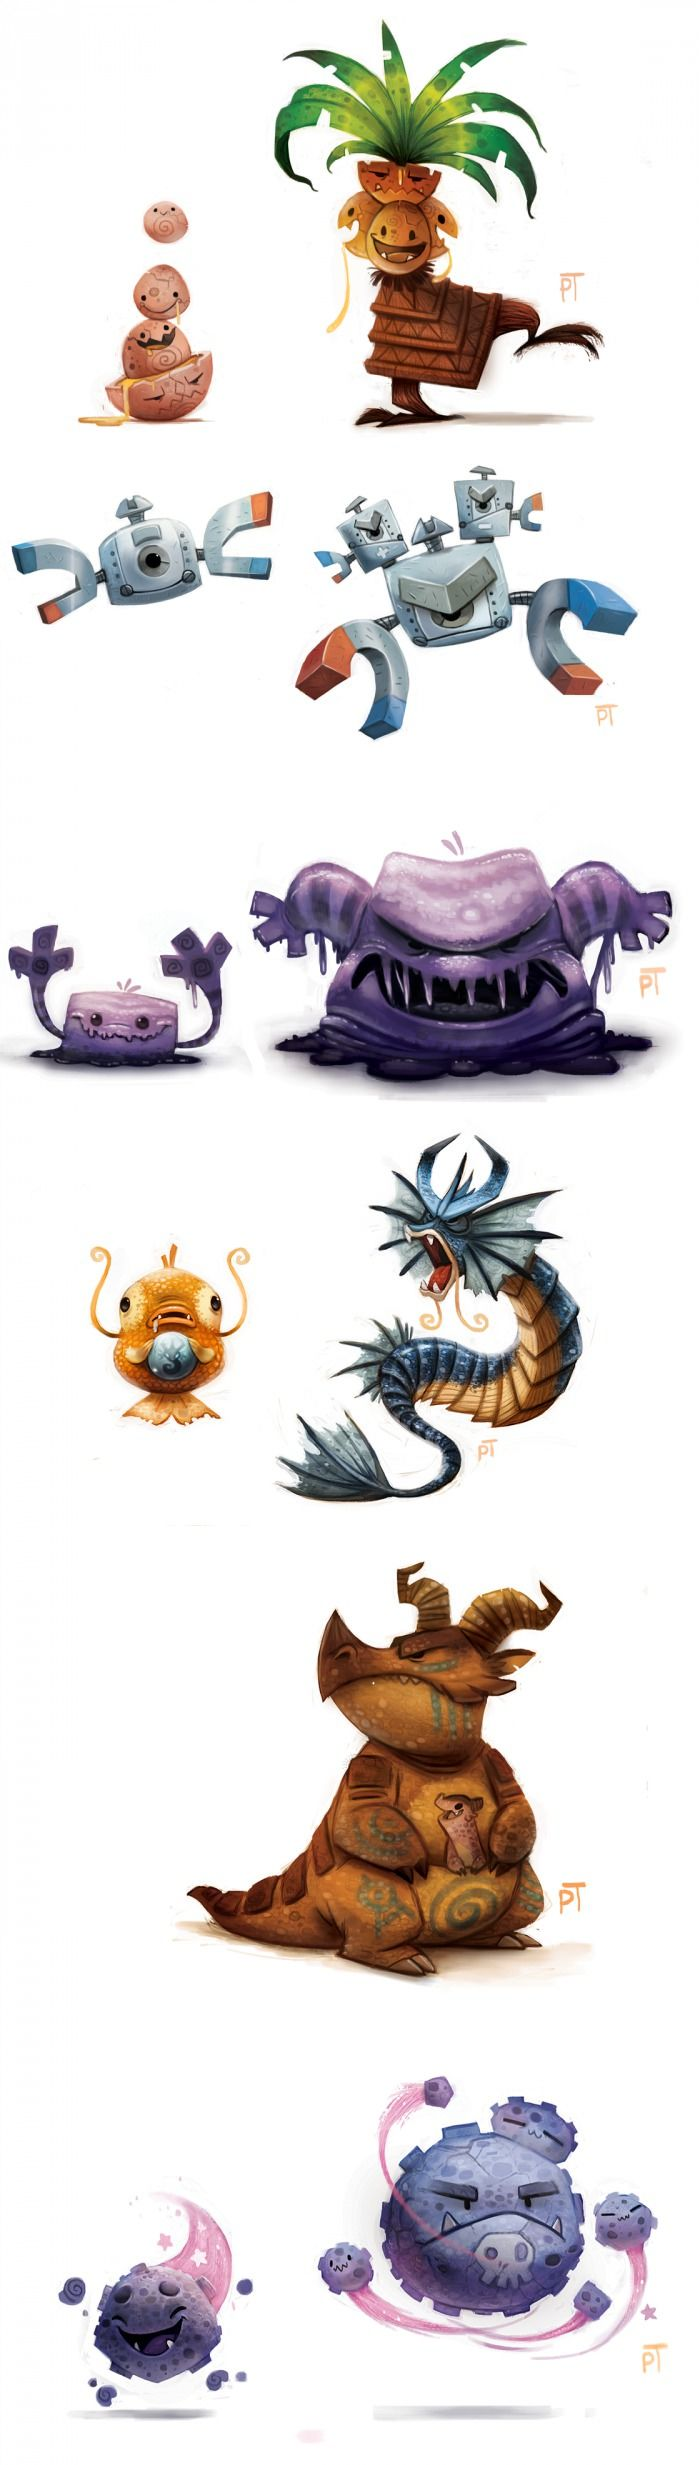 Imagine a pokemon game with this art style. The artist is called Cryptid-Creations on DA - 9GAG